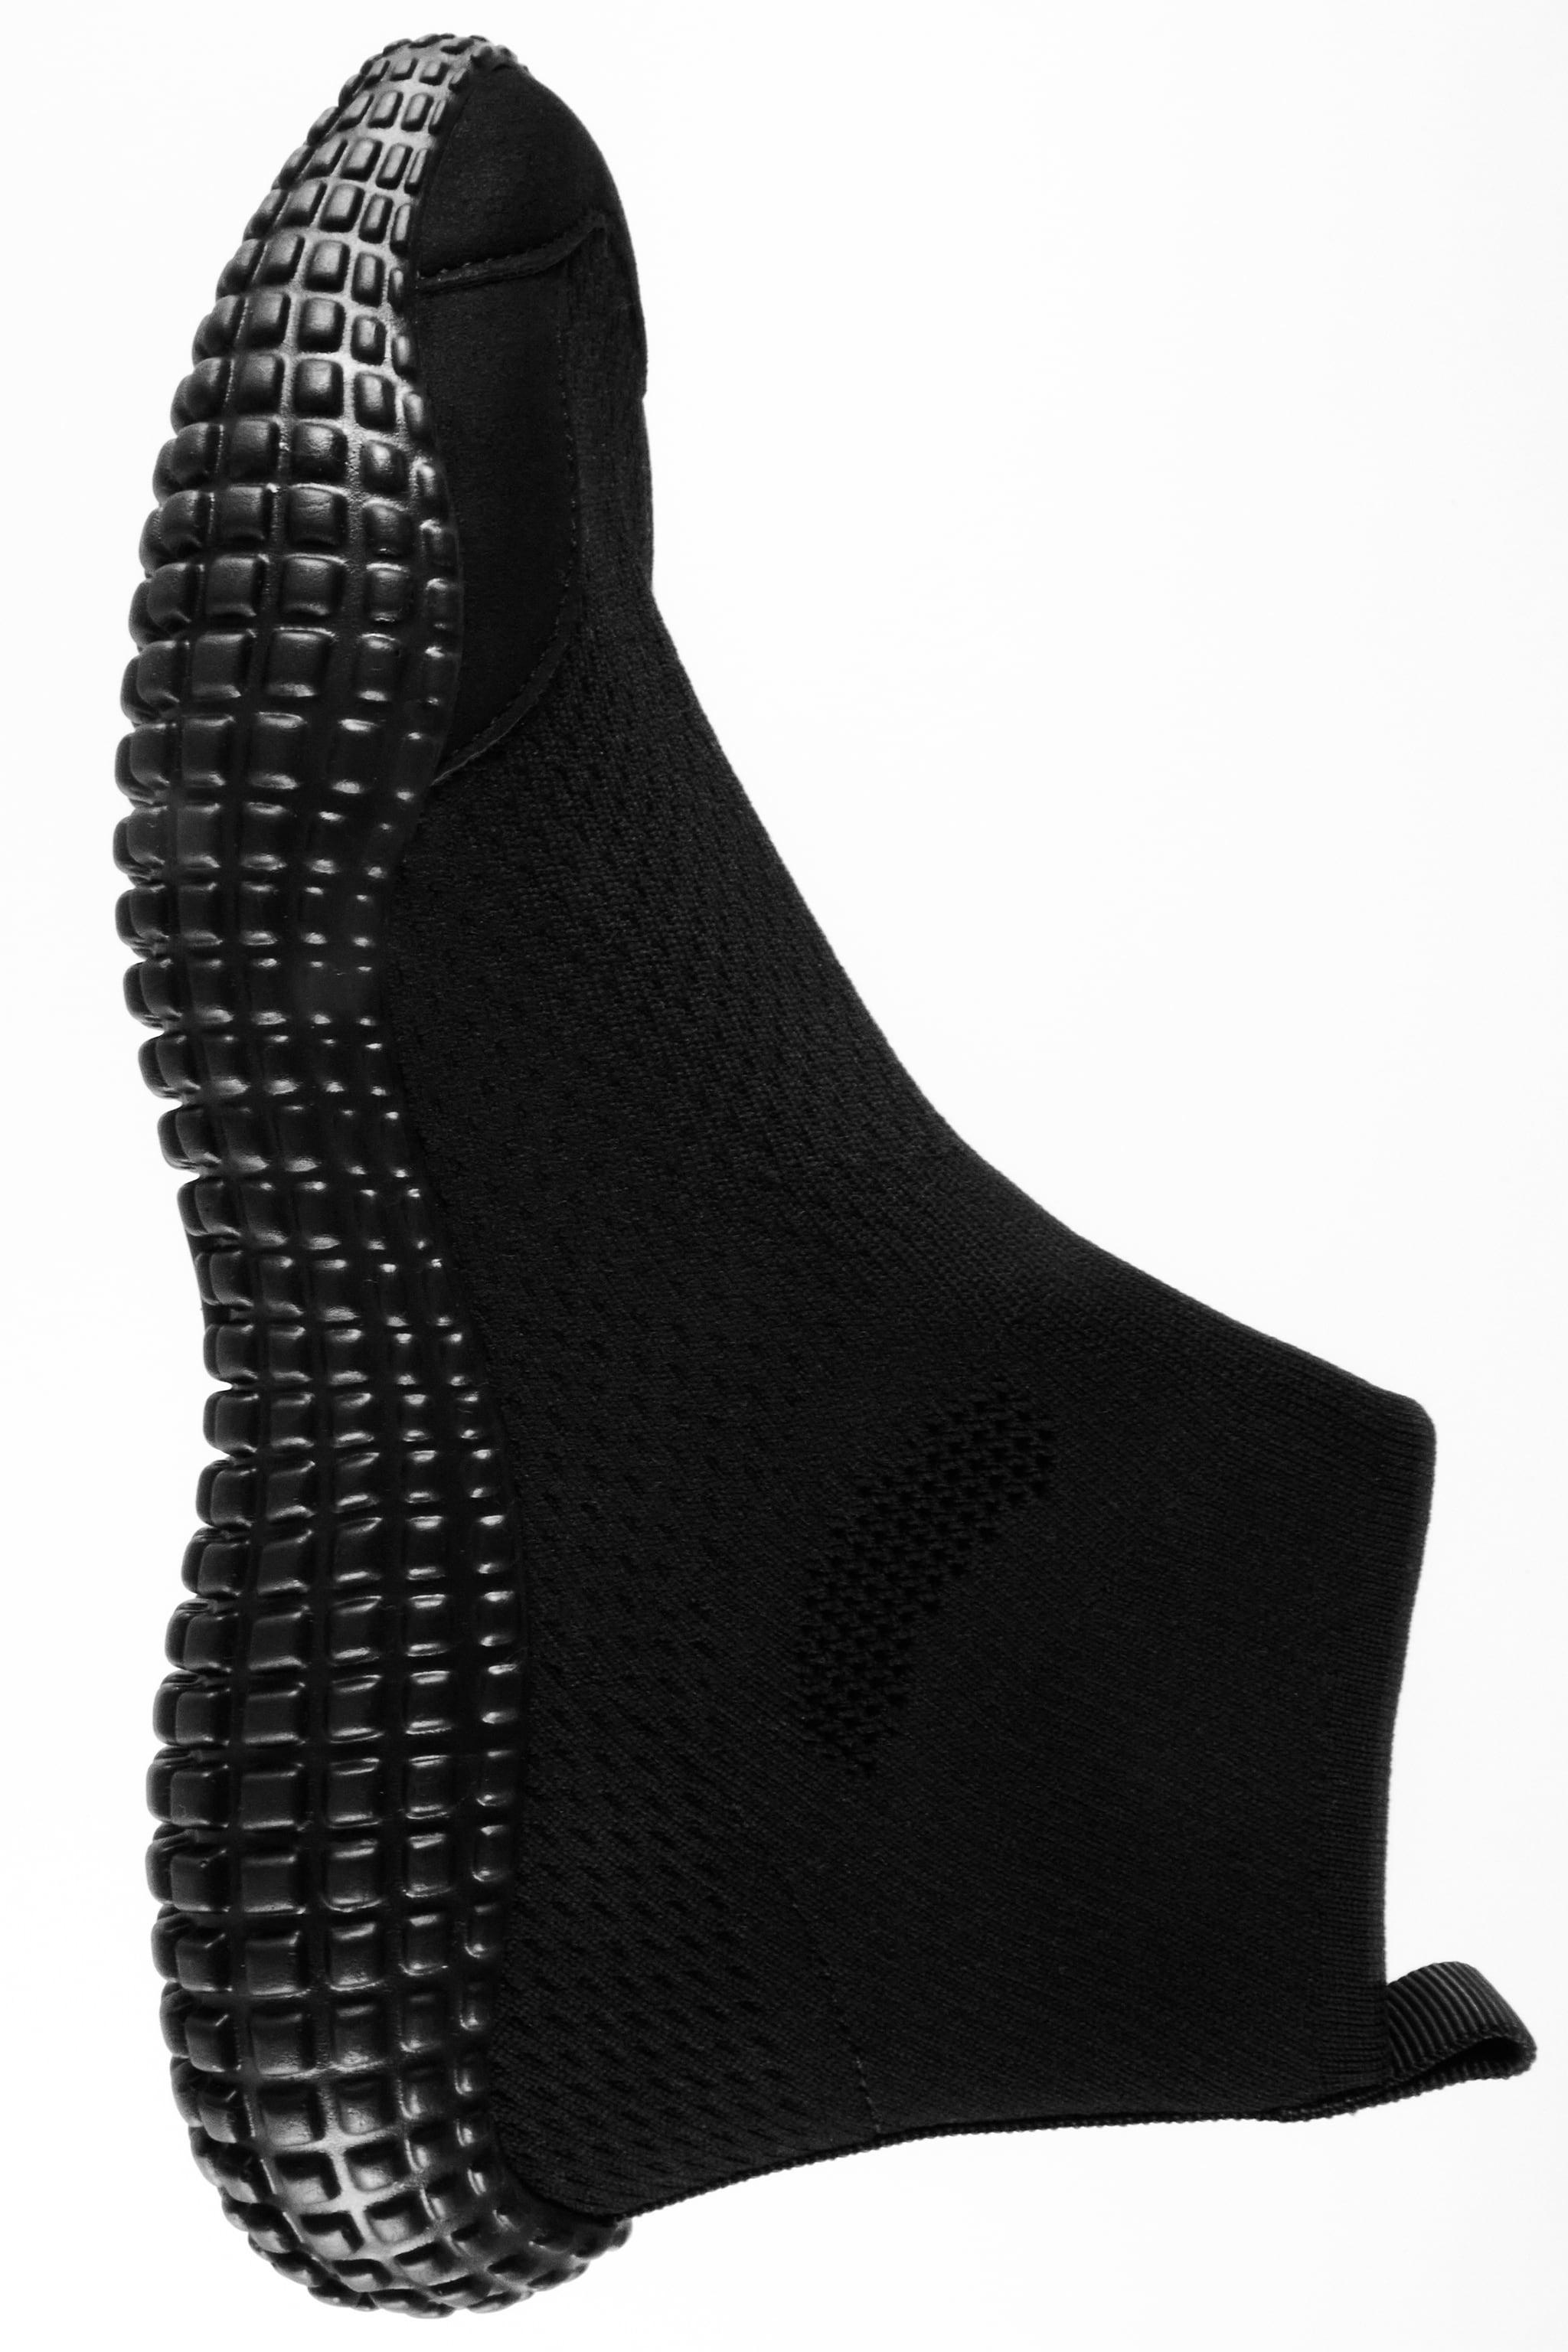 SOCK-STYLE HIGH TOP SNEAKERS